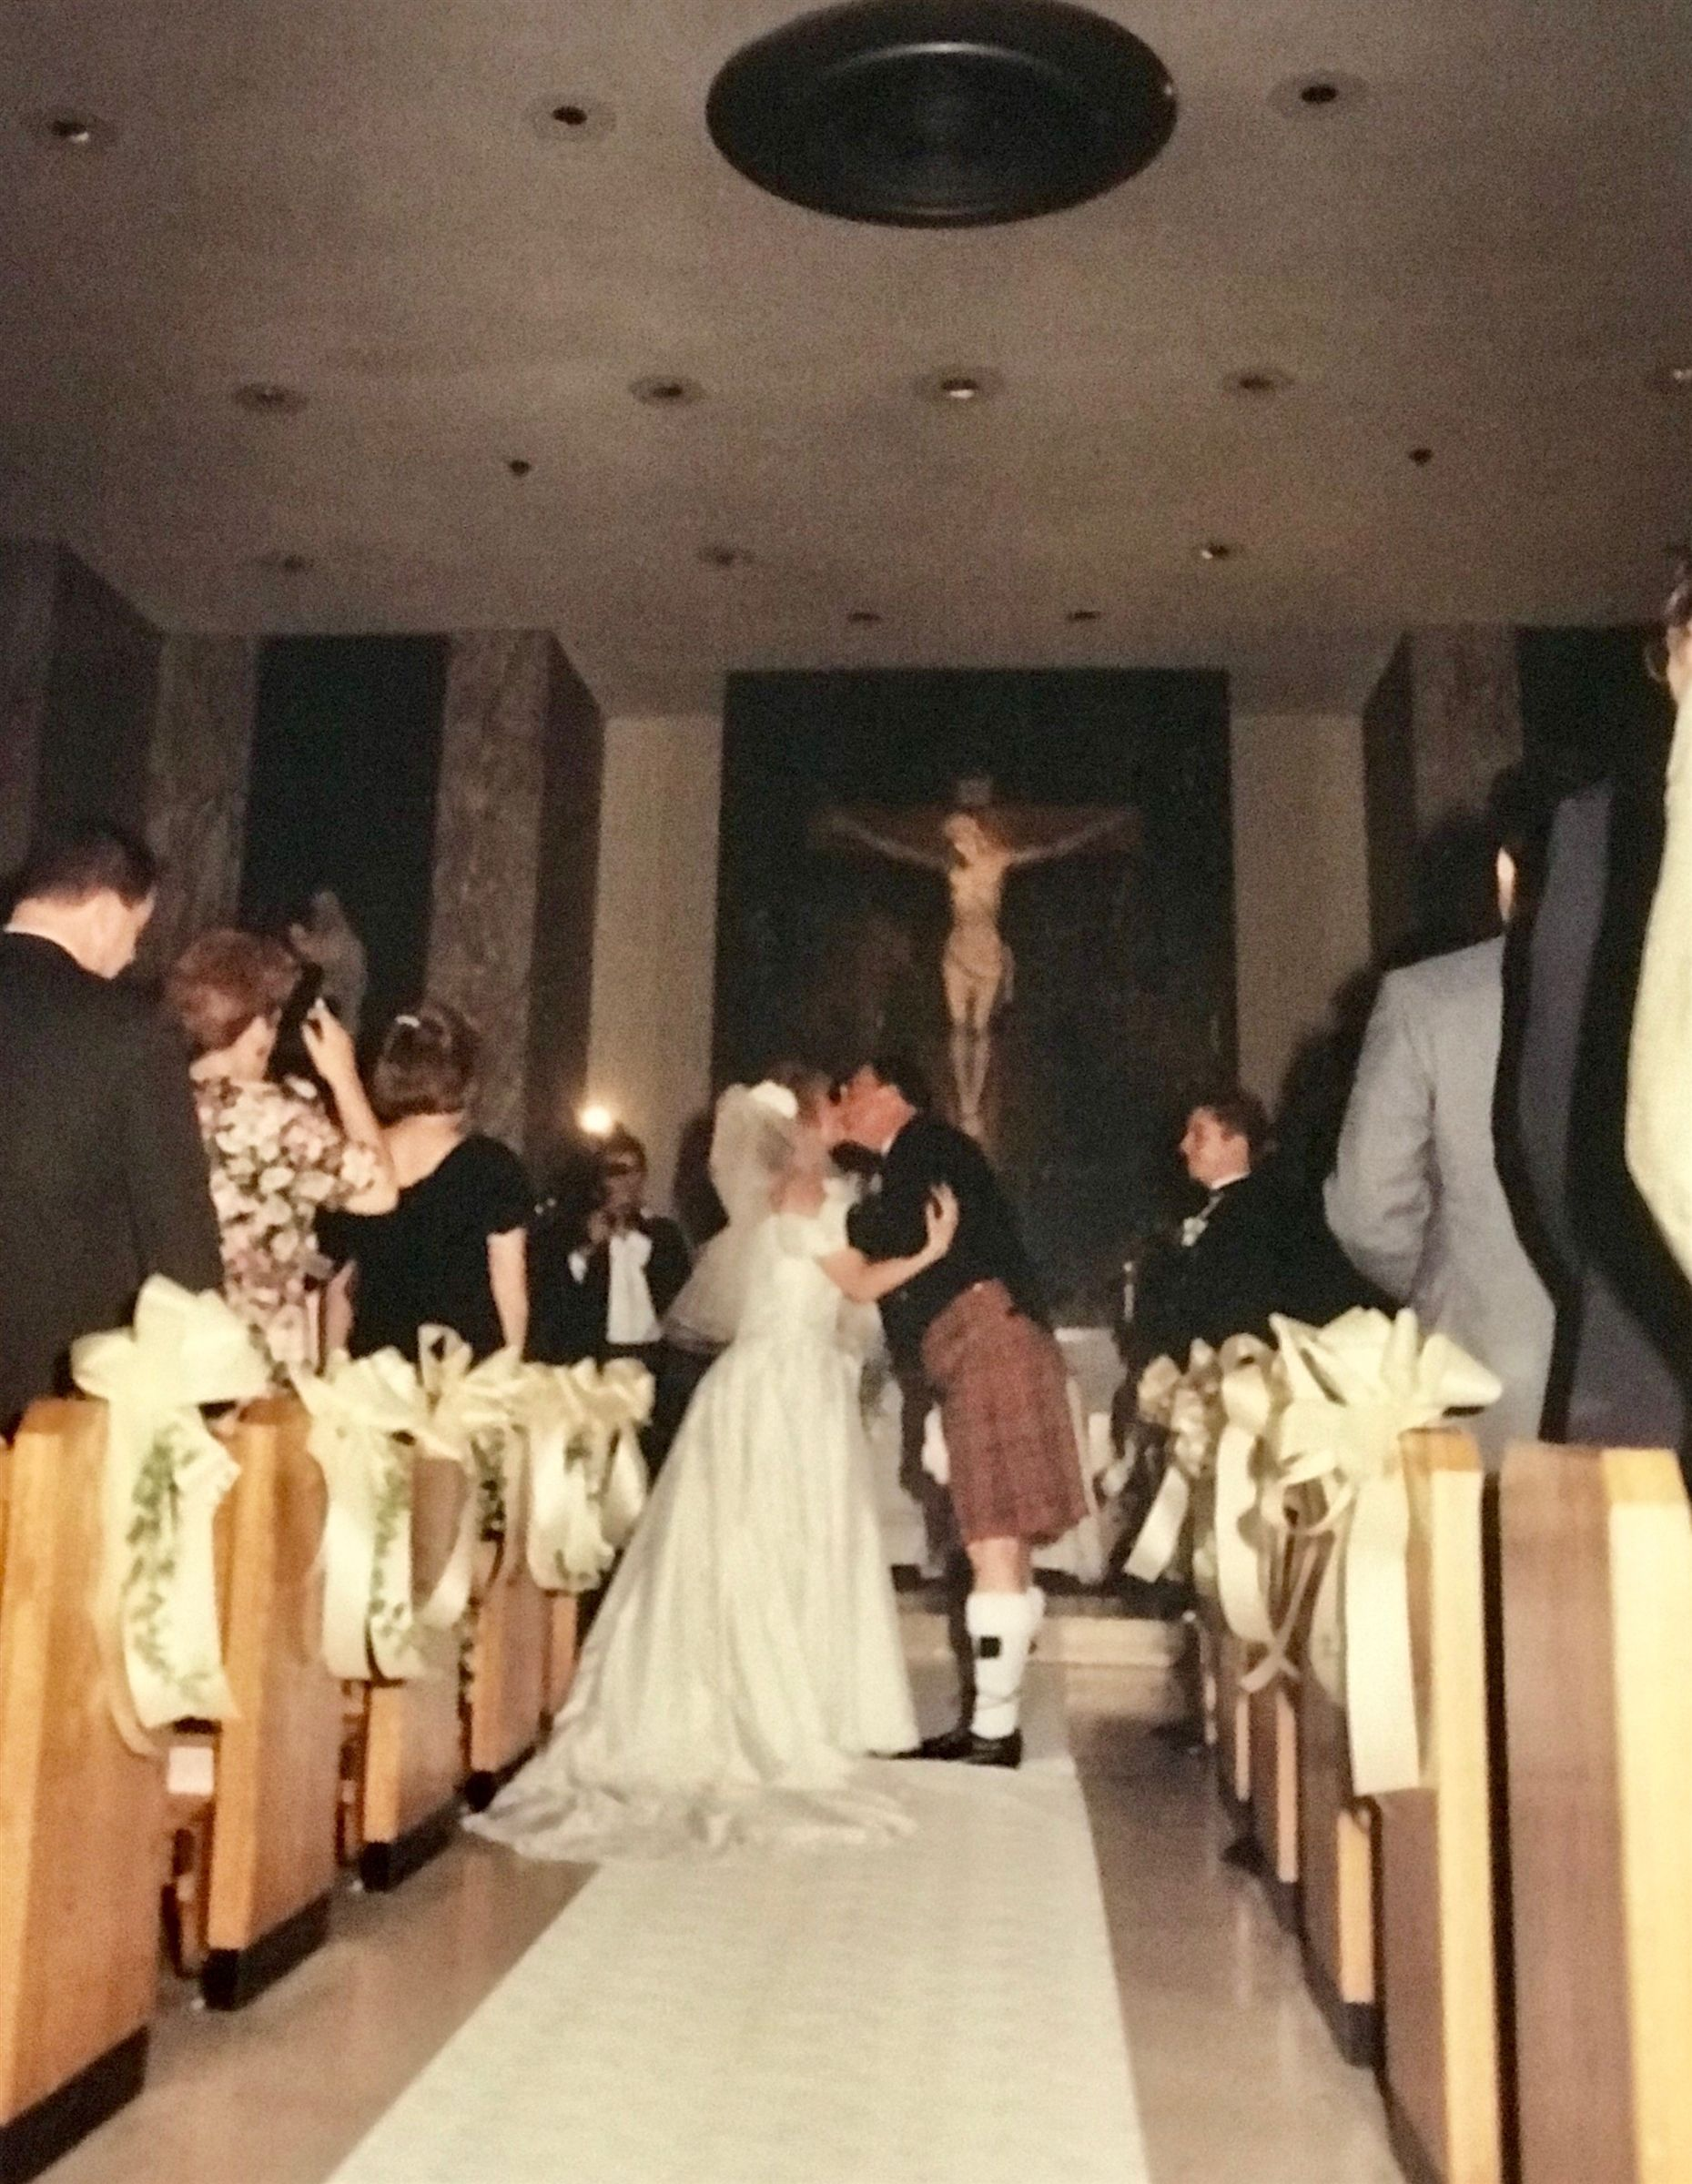 On May 29, 1994 alumna Katherine Munro Bartow '86 was married in St. Joseph's Chapel